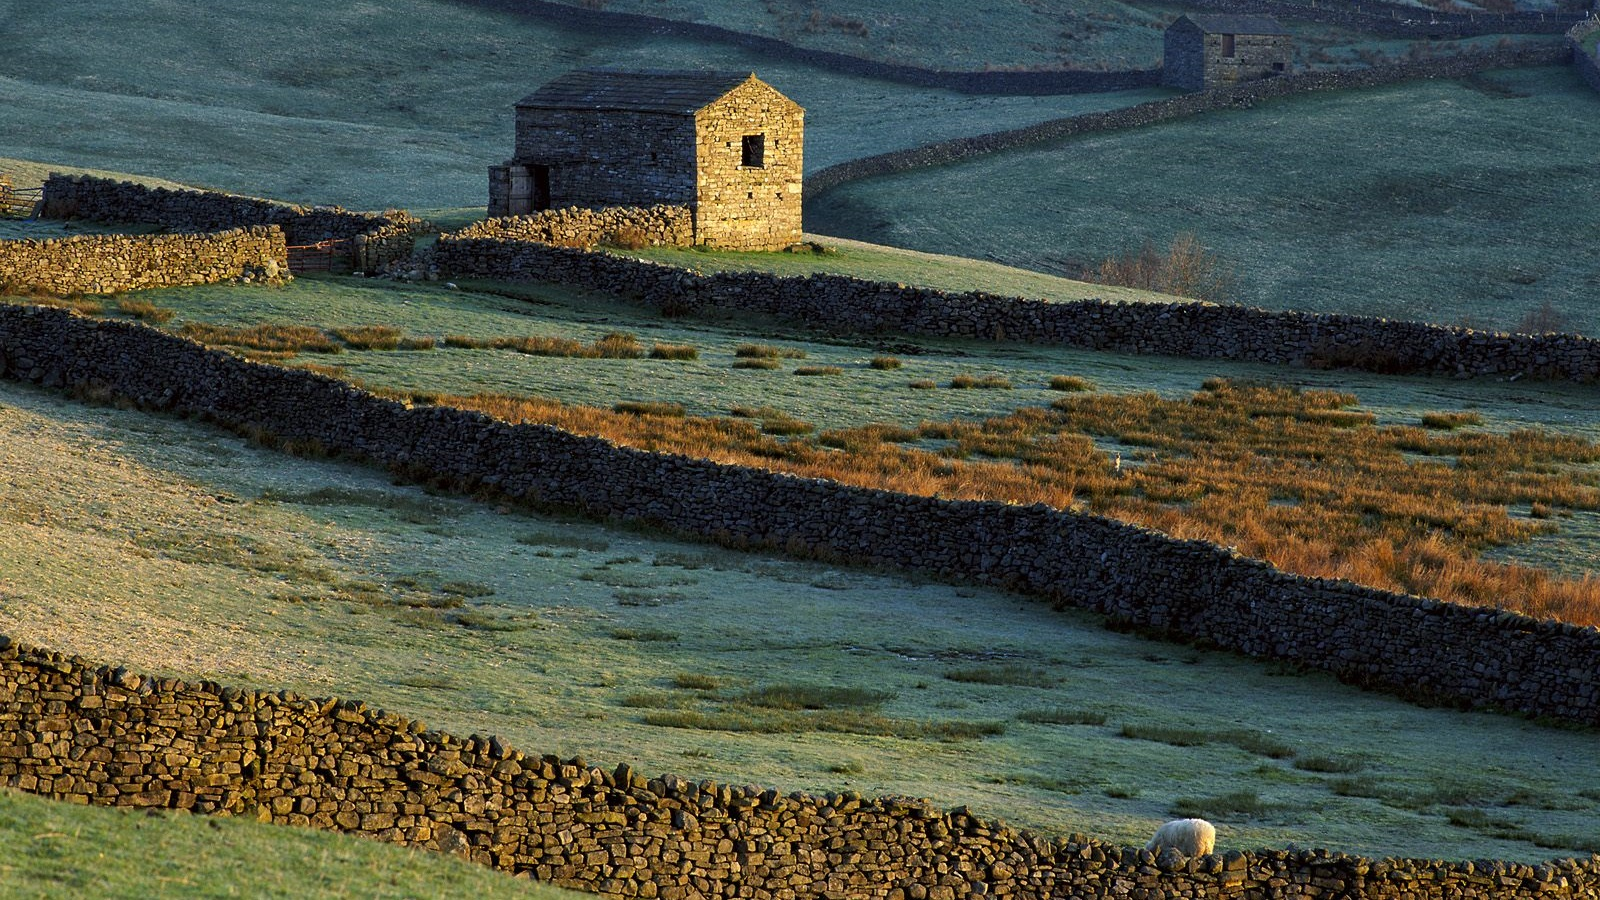 Stone house, fence, grass, sheep 1600x900 wallpaper